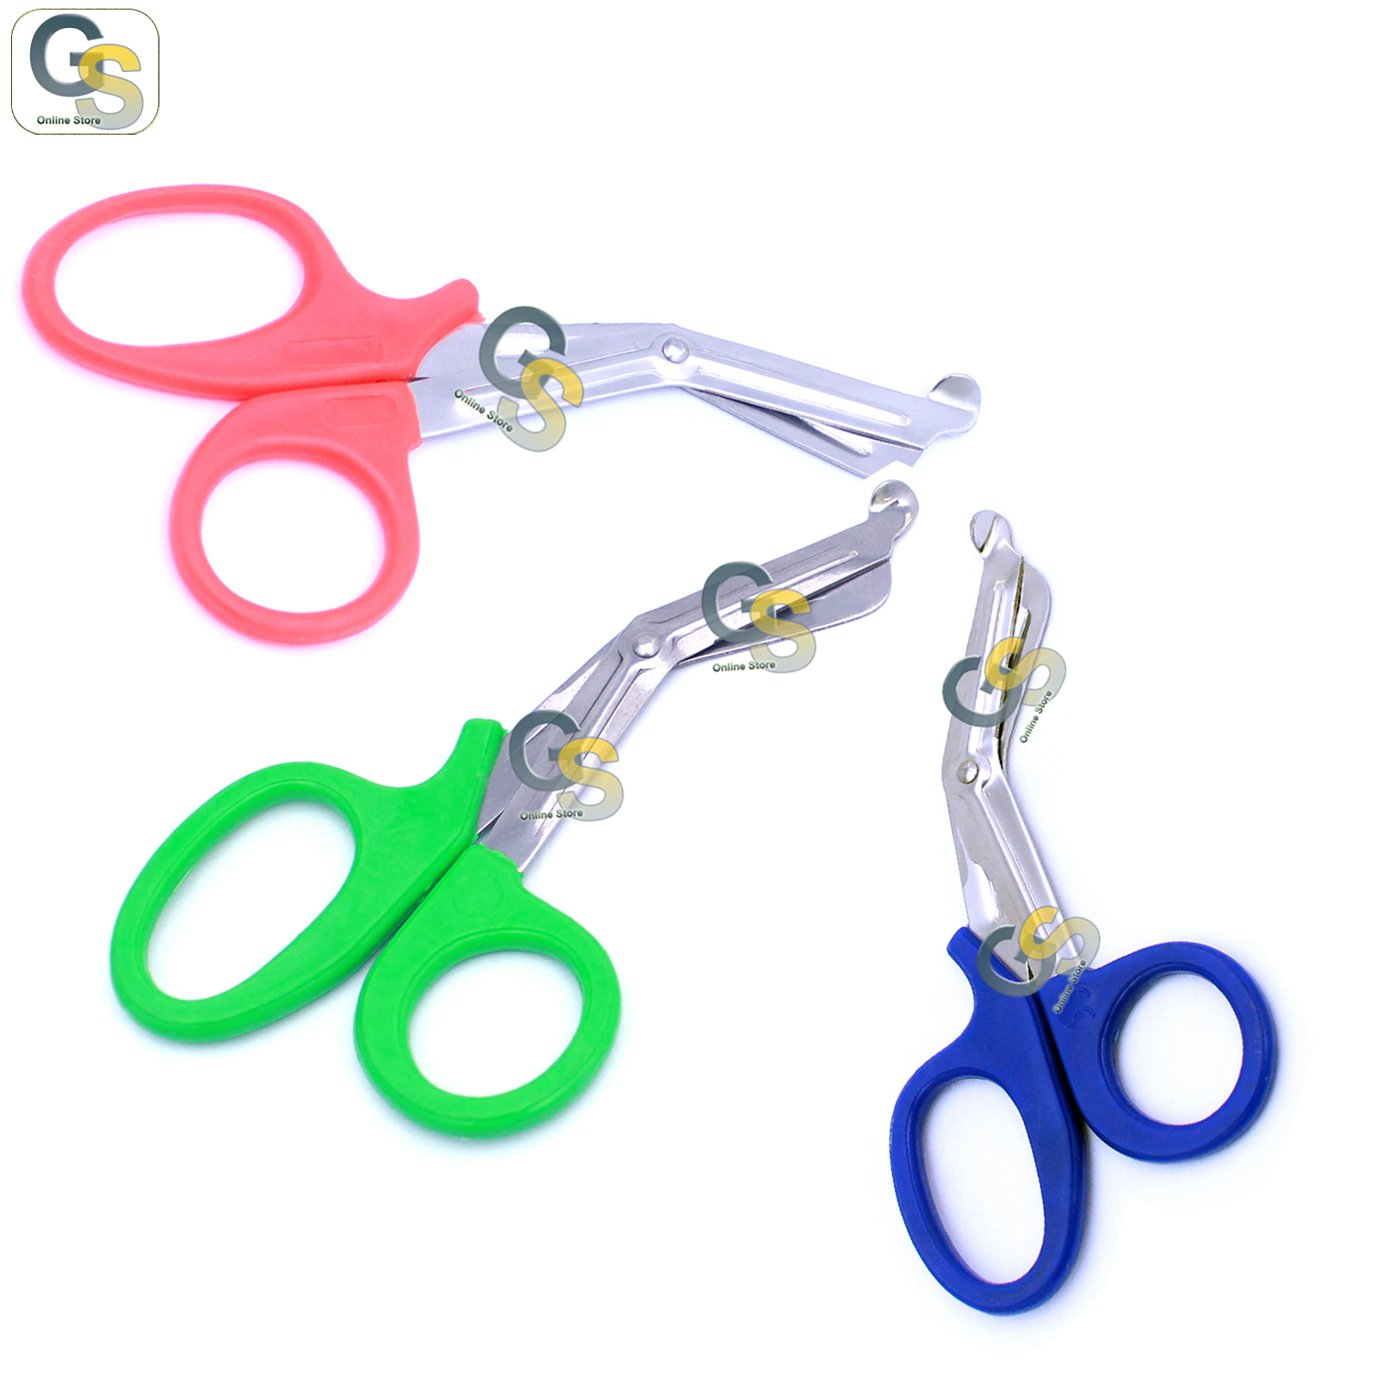 G.S 3 PCS (PINK & GREEN & BLUE) PARAMEDIC UTILITY BANDAGE TRAUMA EMT EMS SHEARS SCISSORS 7.25 INCH STAINLESS STEEL